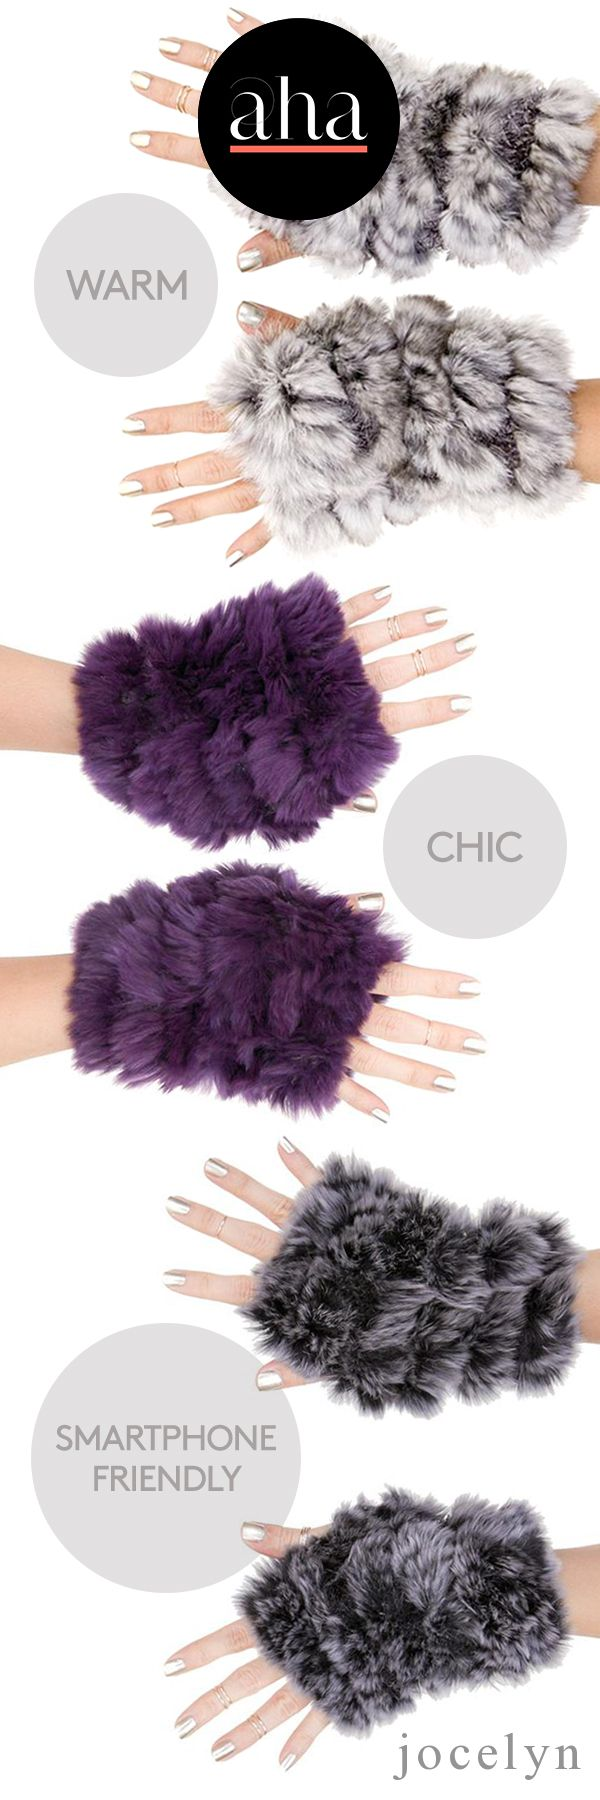 Jocelyn - Warm, chic, smartphone friendly Fingerless MIttens show a casual fashion forward street style, and a touch of glam. Shop now: http://www.ahalife.com/jocelyn?utm_source=Pinterest&utm_medium=ads&utm_campaign=Jocelyn_Android&rw=0